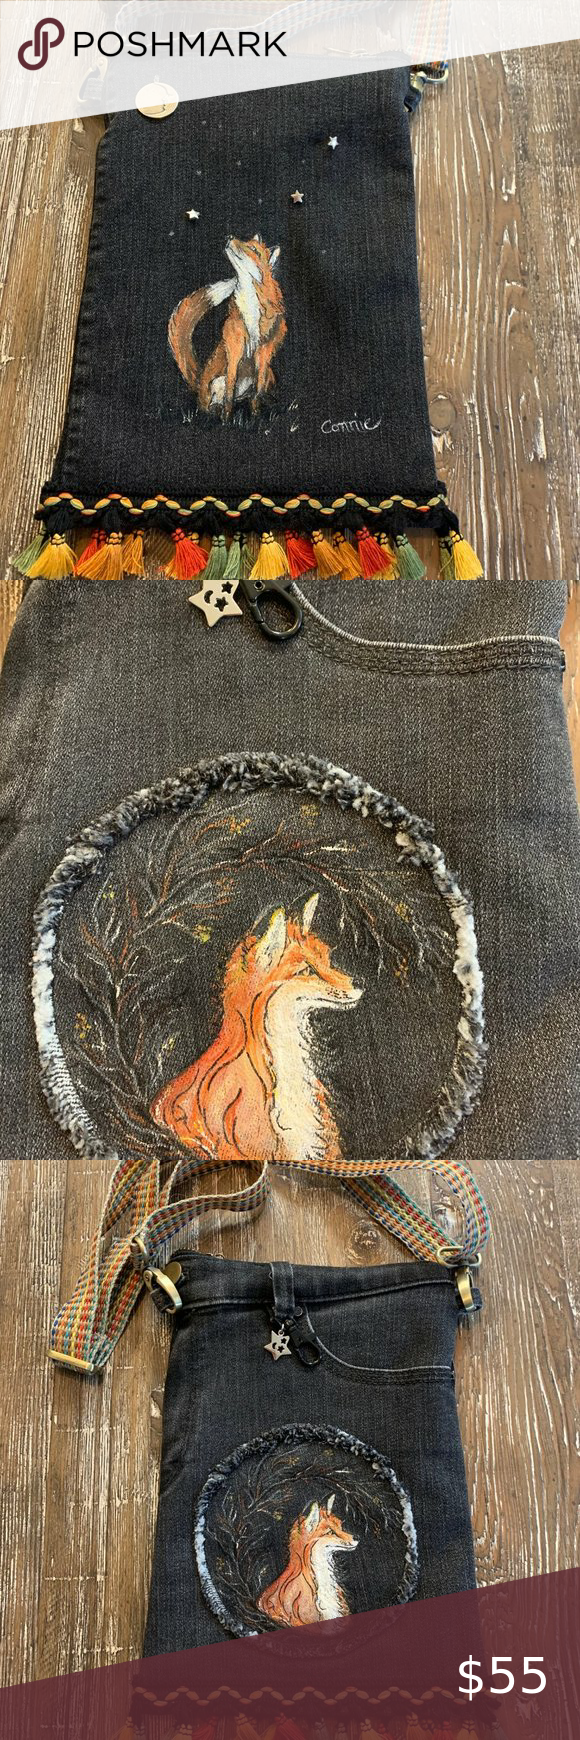 Handmade Hand Painted Fox Crossbody Purse NEW Sweet Purse - Hand painted fox looking a moon charm. Painted on black denim jeans. Great colors in trim and strap. Jean pocket used on one side to hold cell phone, glasses, etc. with key clasp and star charm added to jeans belt loop. Zipper closure, lined inside with zippered pocket. Adjustable strap for crossbody wear. 7.25